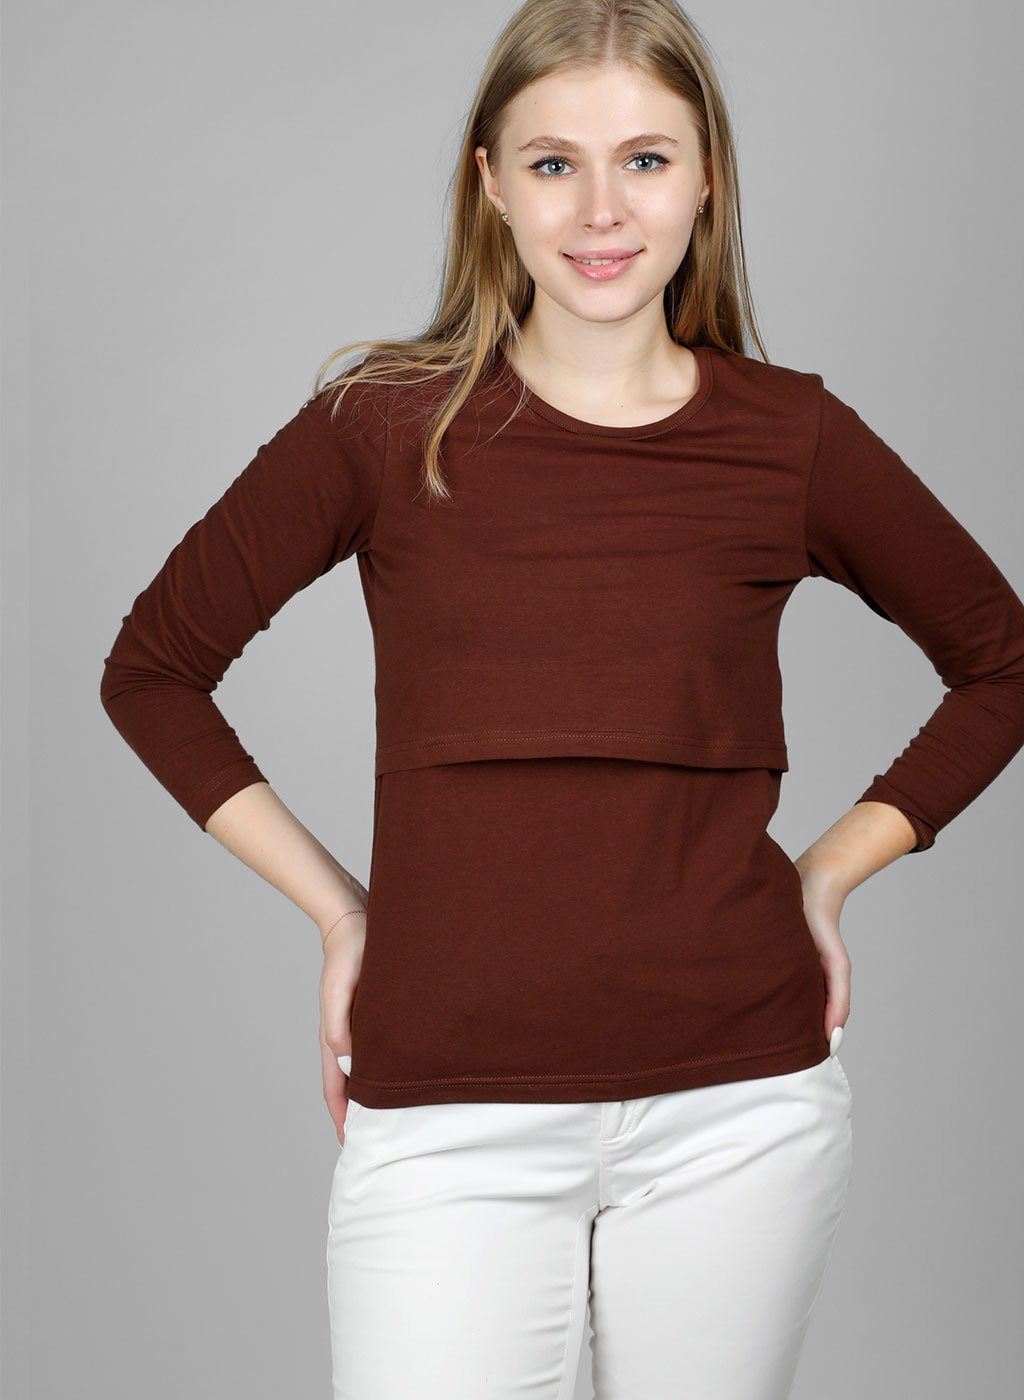 Lovemère Long Sleeve Nursing Top